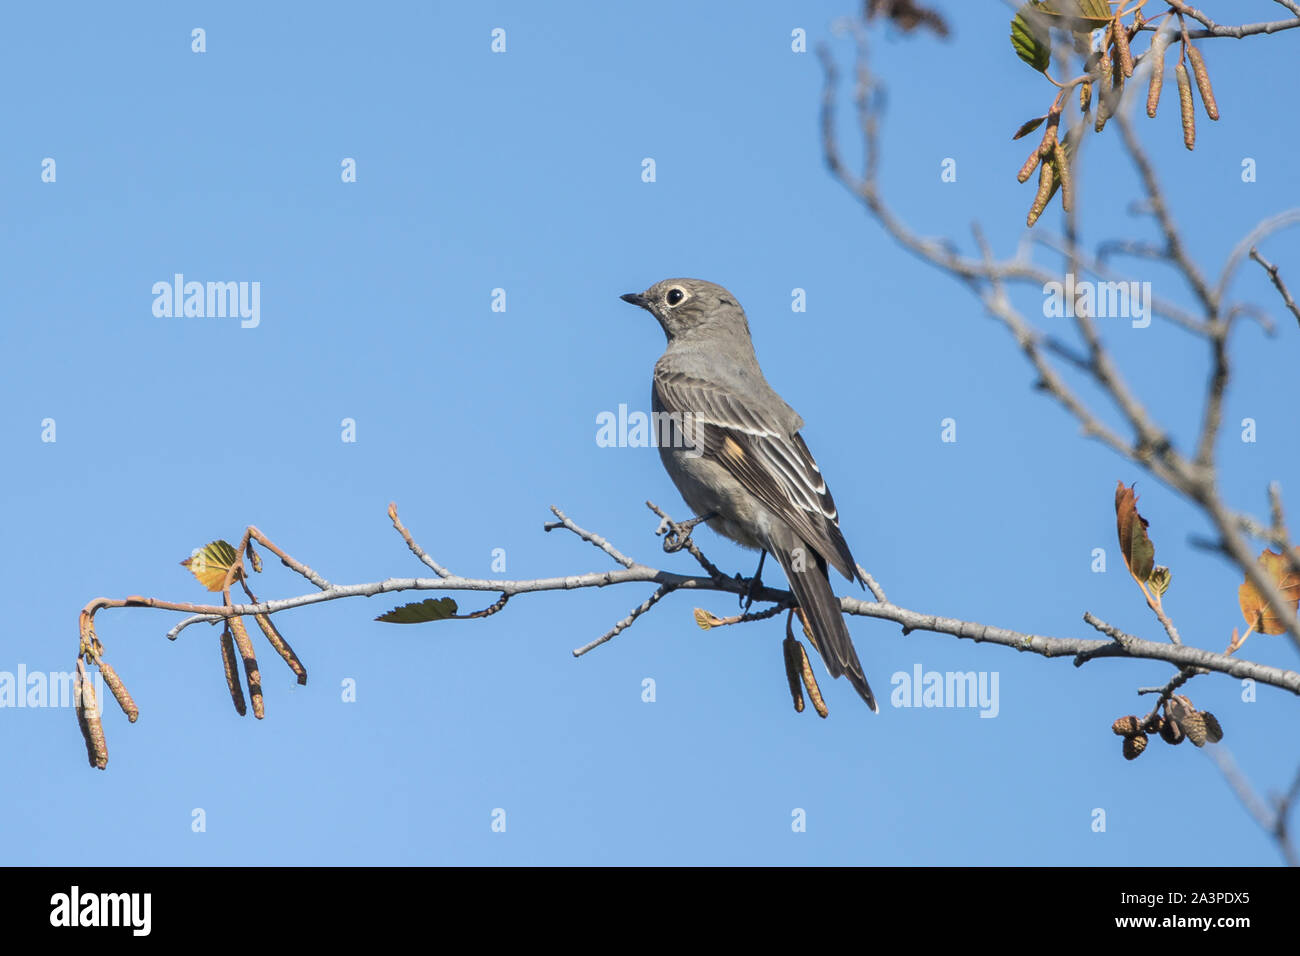 A northern Mockingbird is perched on a branch in western Montana. Stock Photo